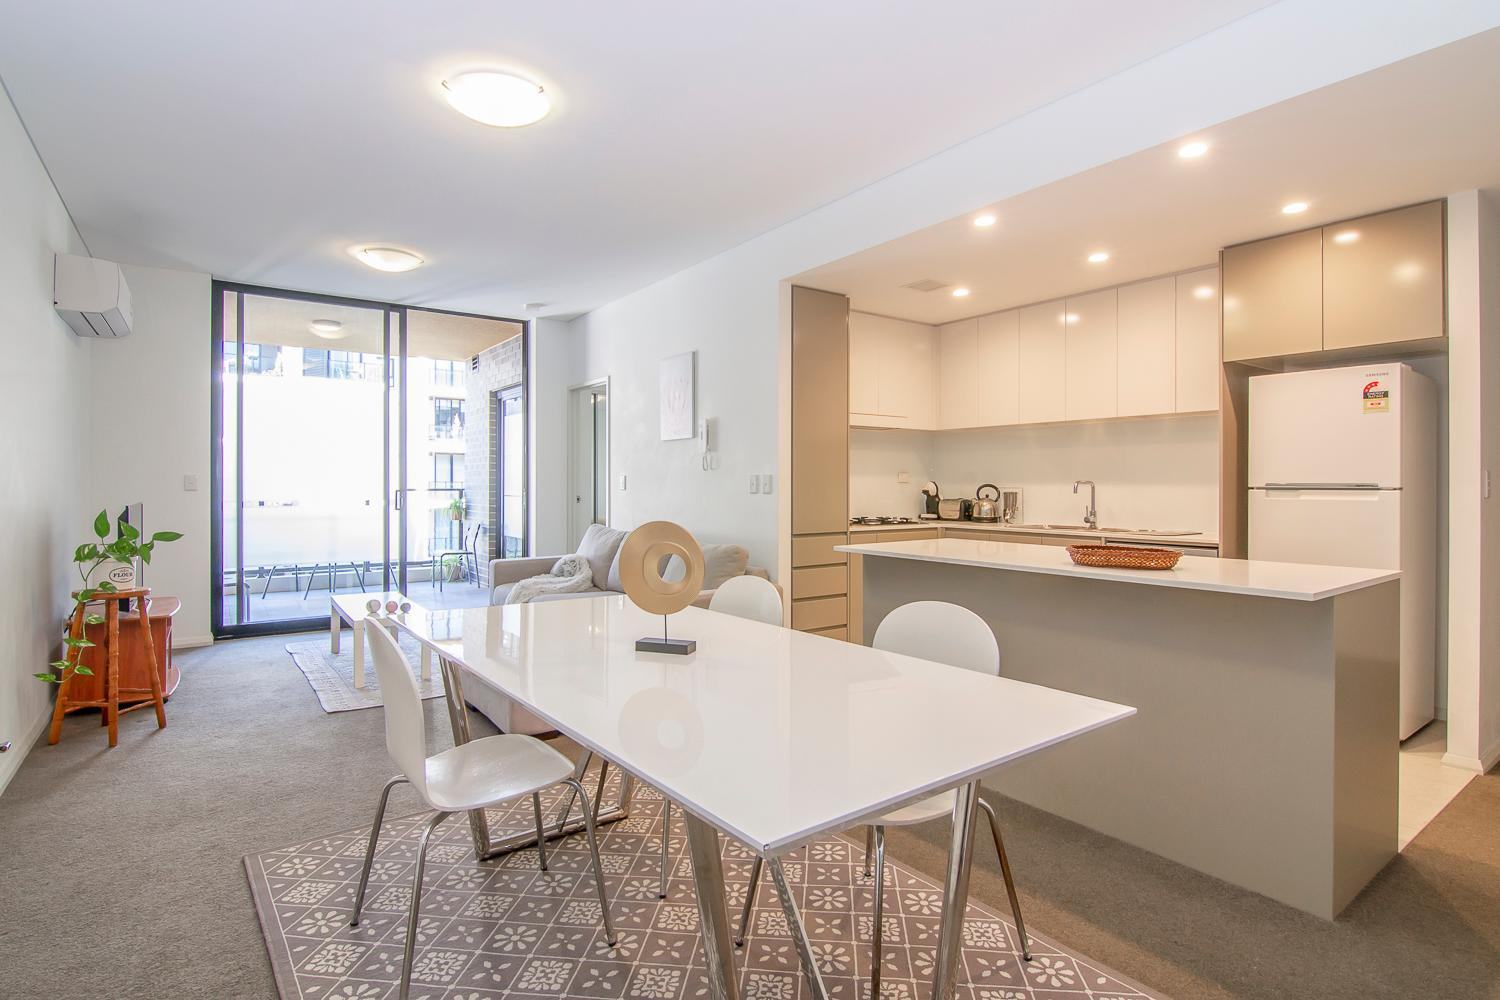 Charming And Dream Home In Sydney  FREE CARPARK